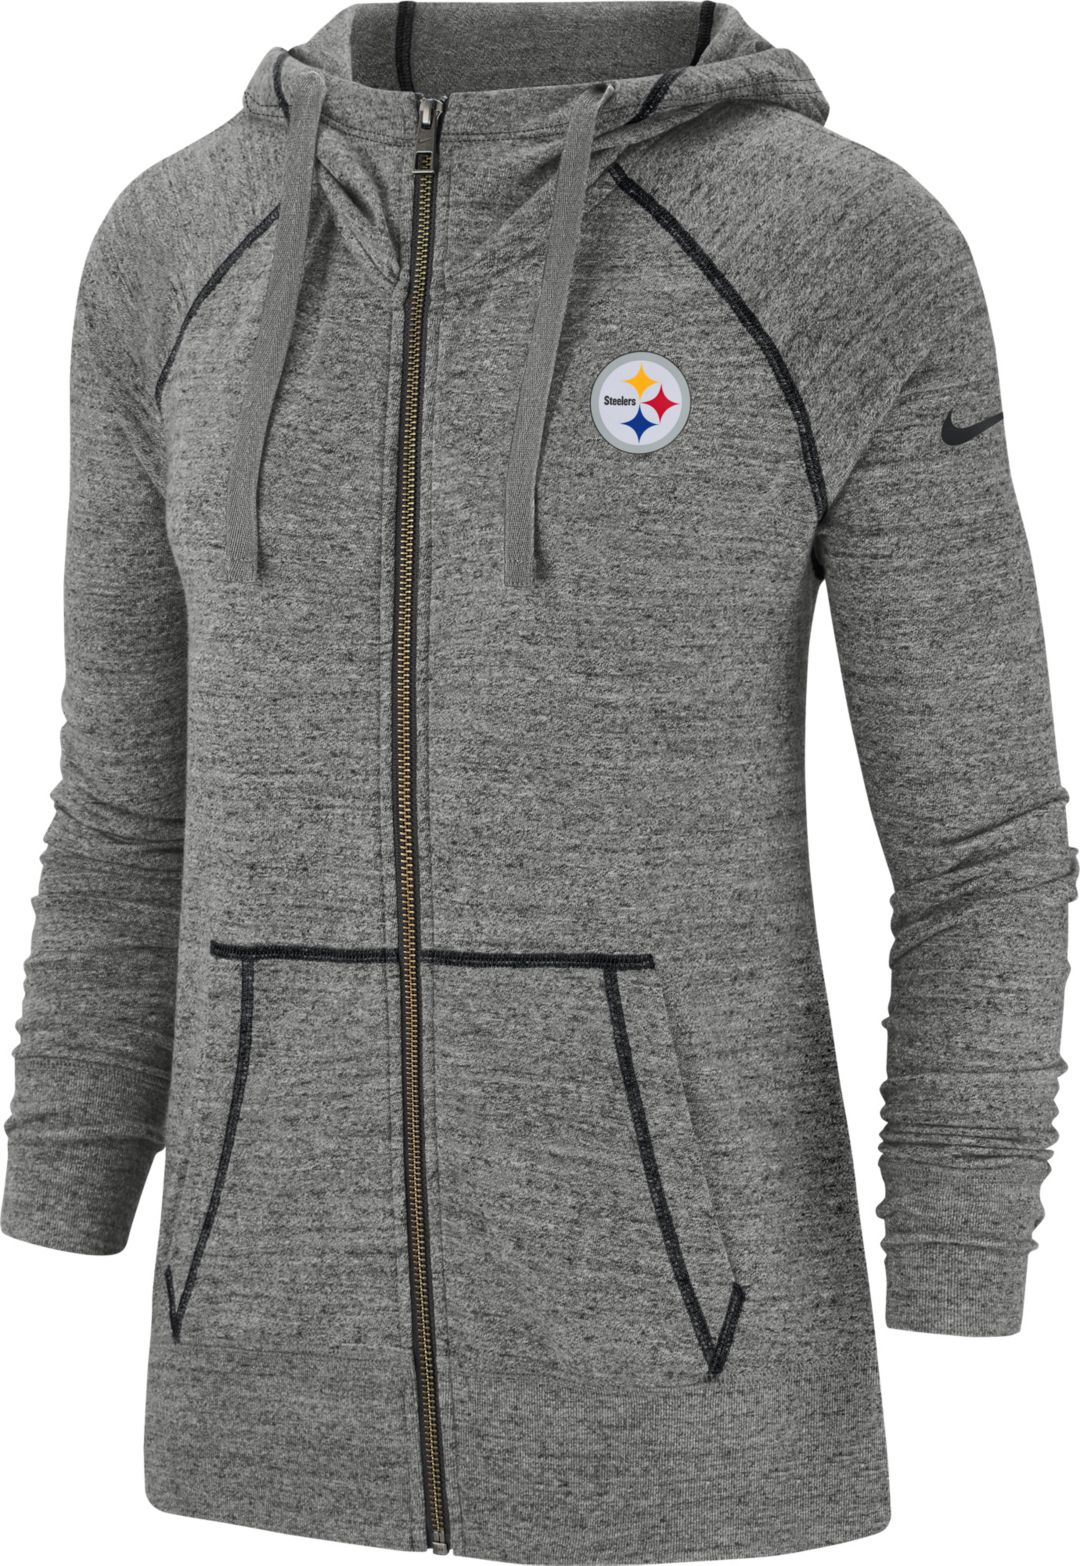 new product 938a1 c17b3 Nike Women's Pittsburgh Steelers Vintage Grey Full-Zip Hoodie